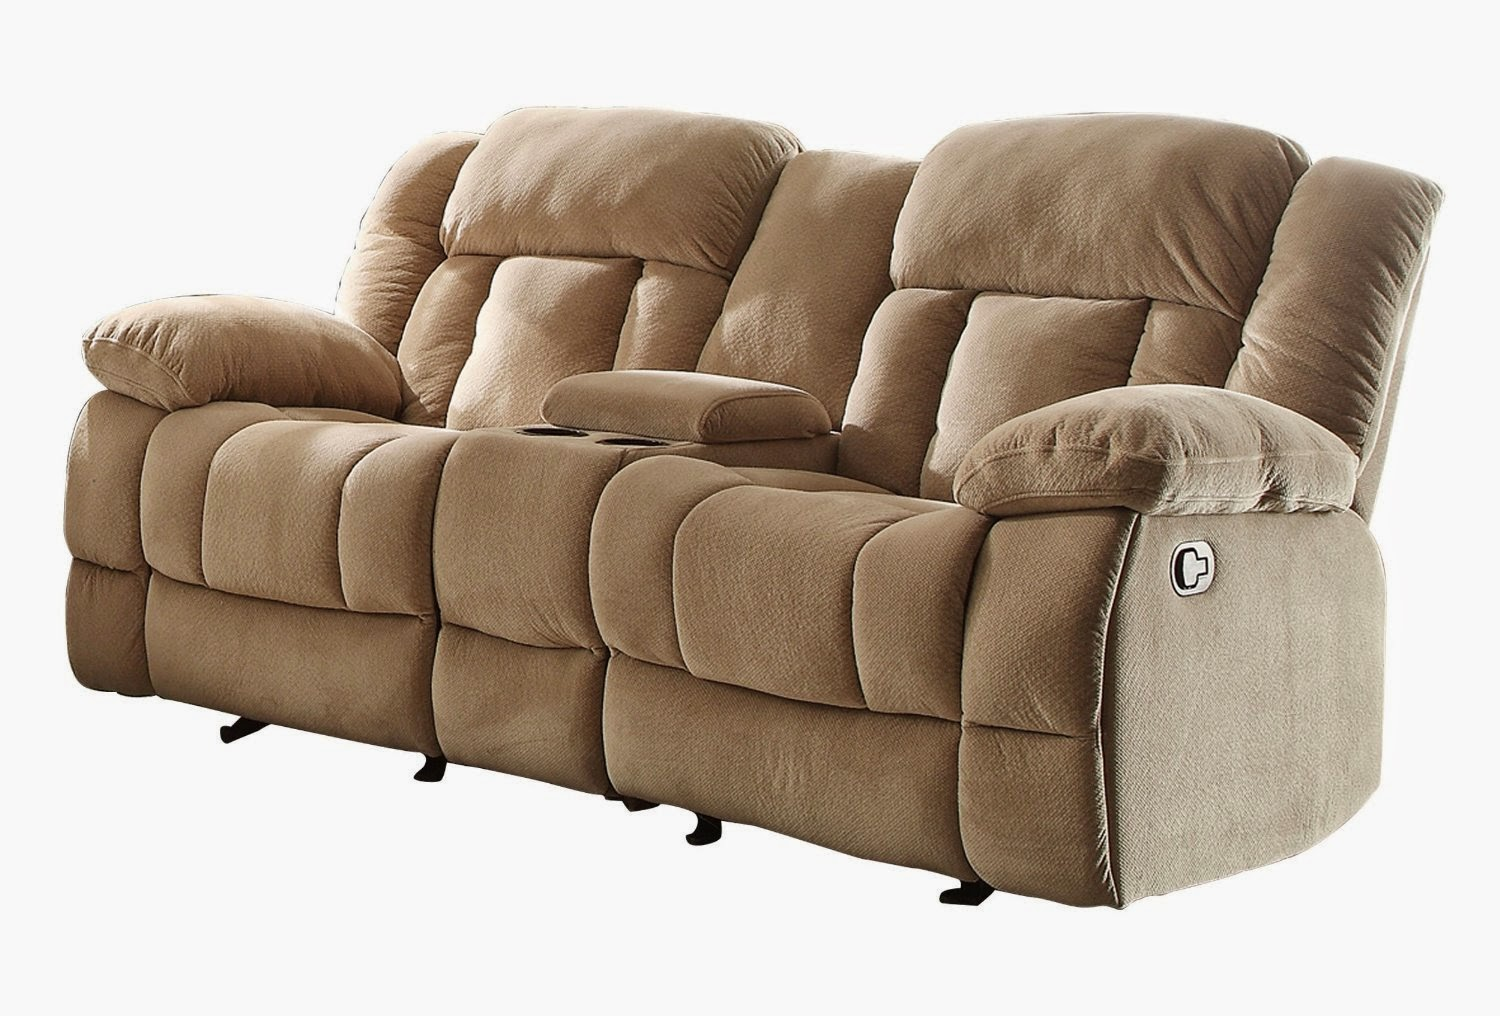 Reclining loveseat sale reclining sofas and loveseats cheap for Couch and loveseat